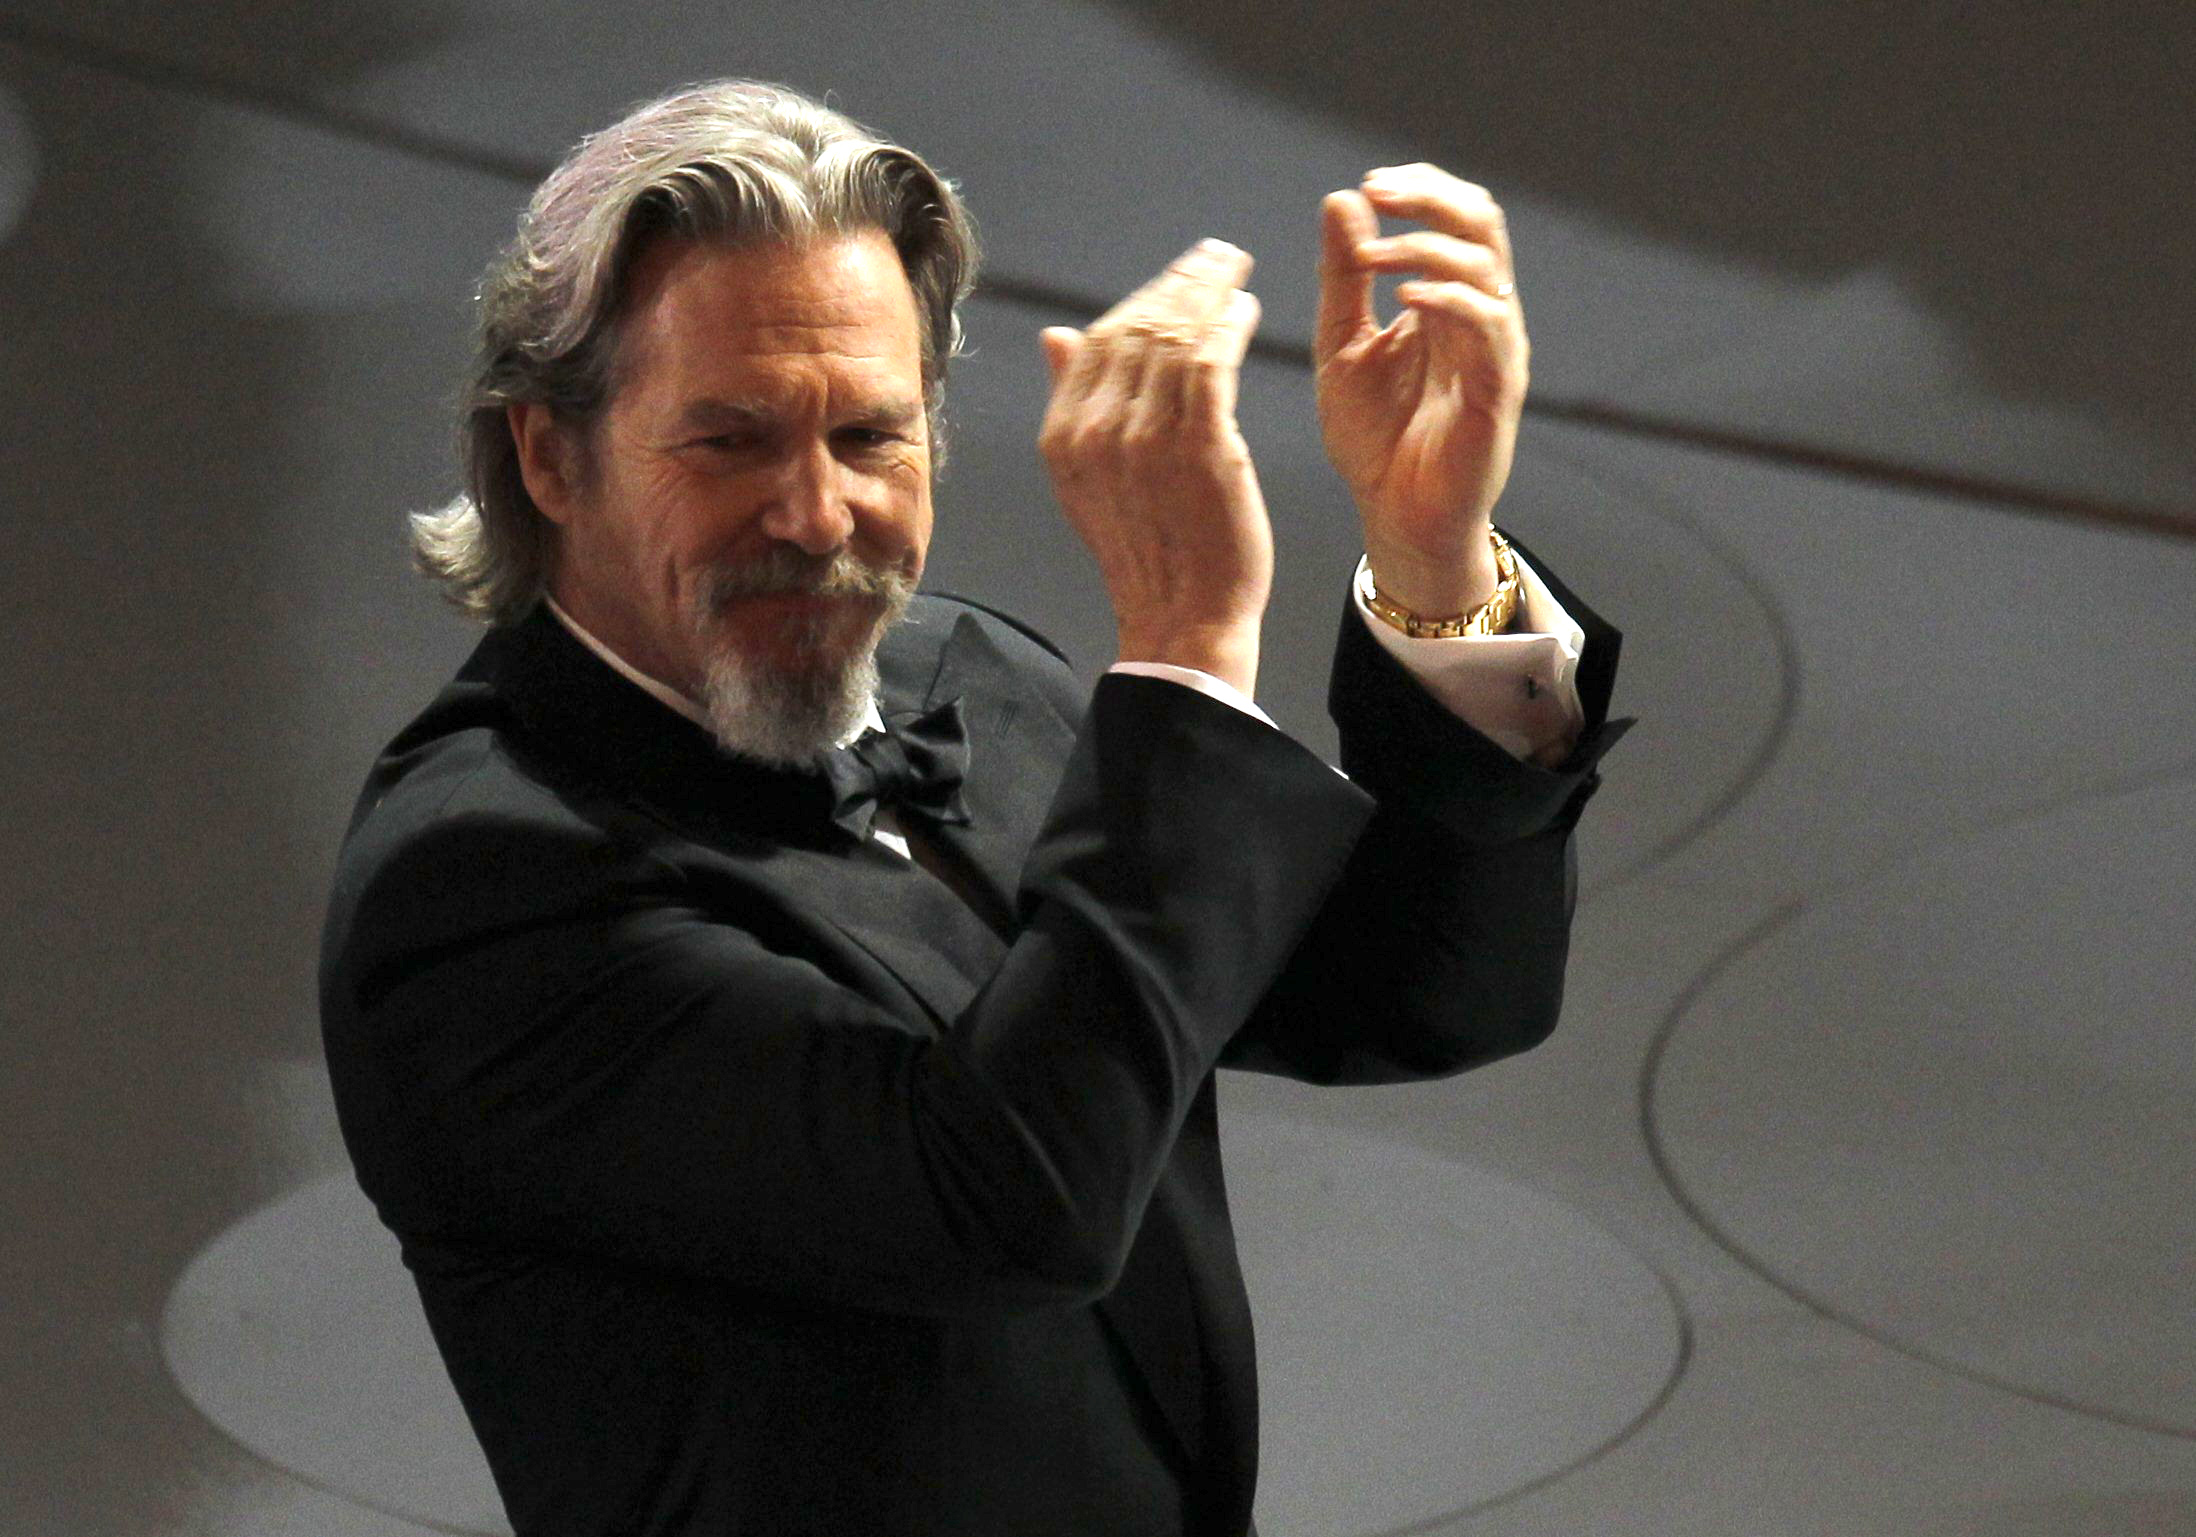 Actor Jeff Bridges applauds during the presentation of the Governors Awards during the 82nd Academy Awards in Hollywood March 7, 2010.   REUTERS/Gary Hershorn  (UNITED STATES)  (OSCARS-SHOW - Tags: ENTERTAINMENT)